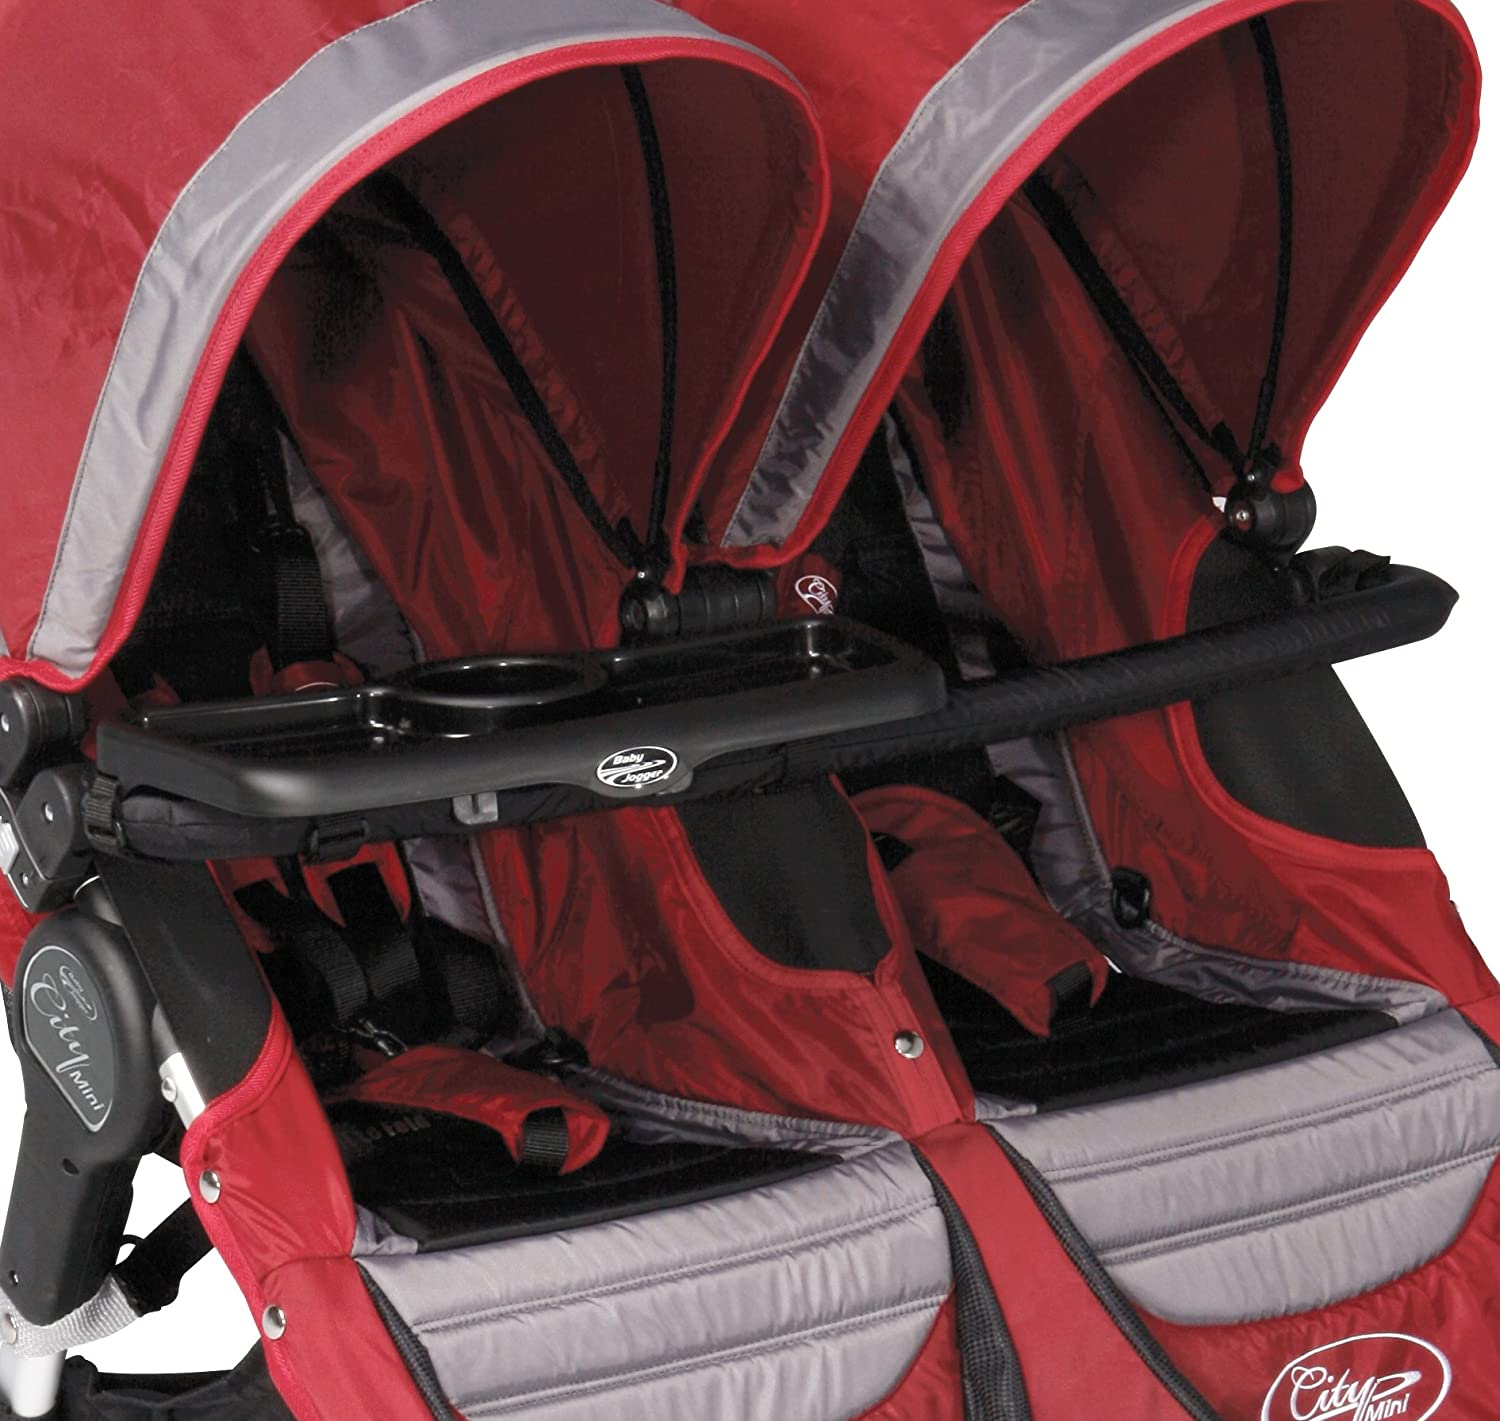 Baby Jogger City Double Stroller and Summit J7G60 Children's Tray, Black MOLEO Sp.z o.o.